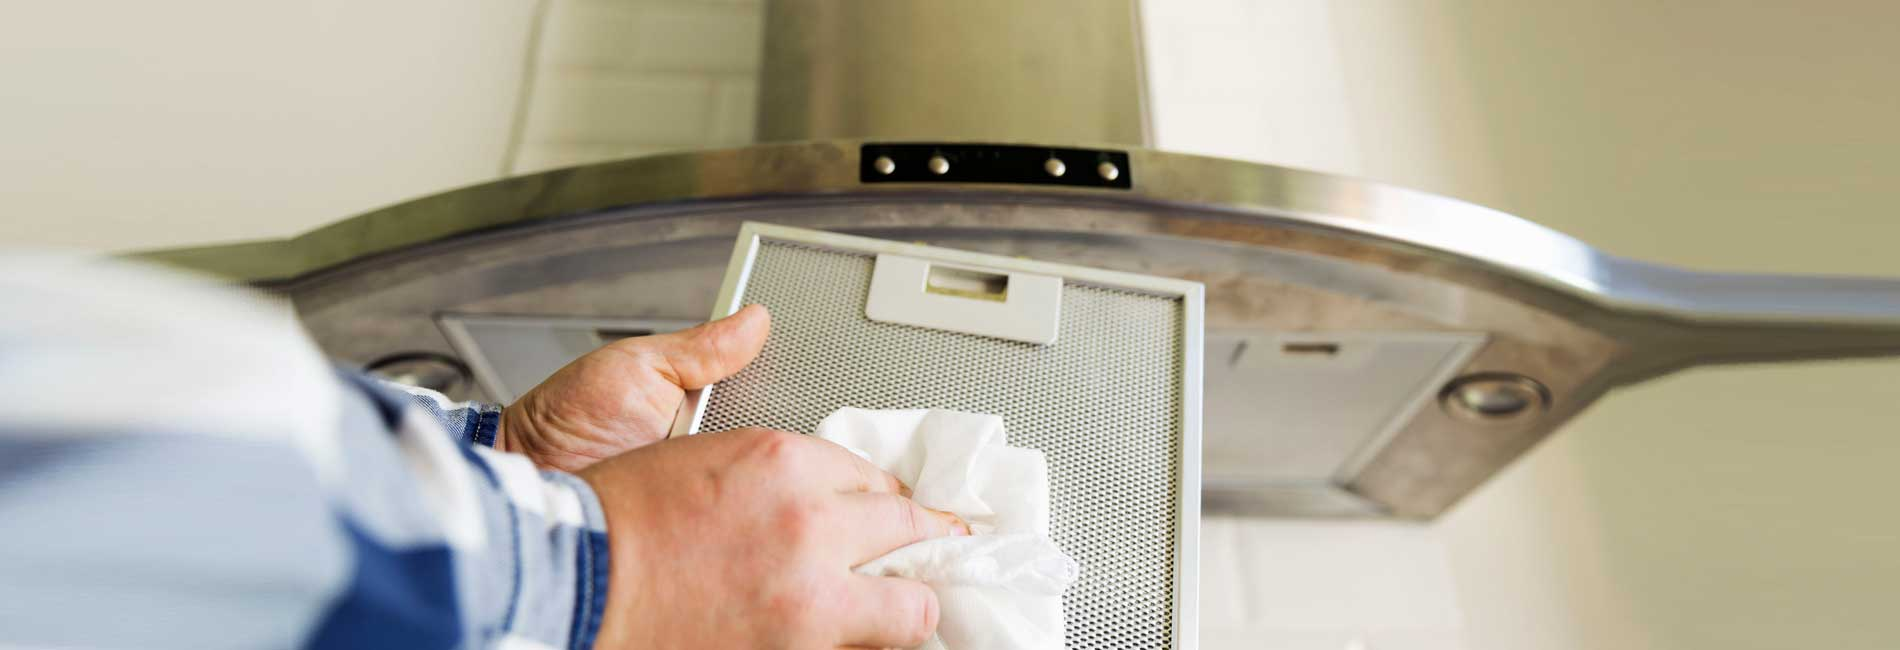 Hindware Chimney Cleaning Service in Tambaram